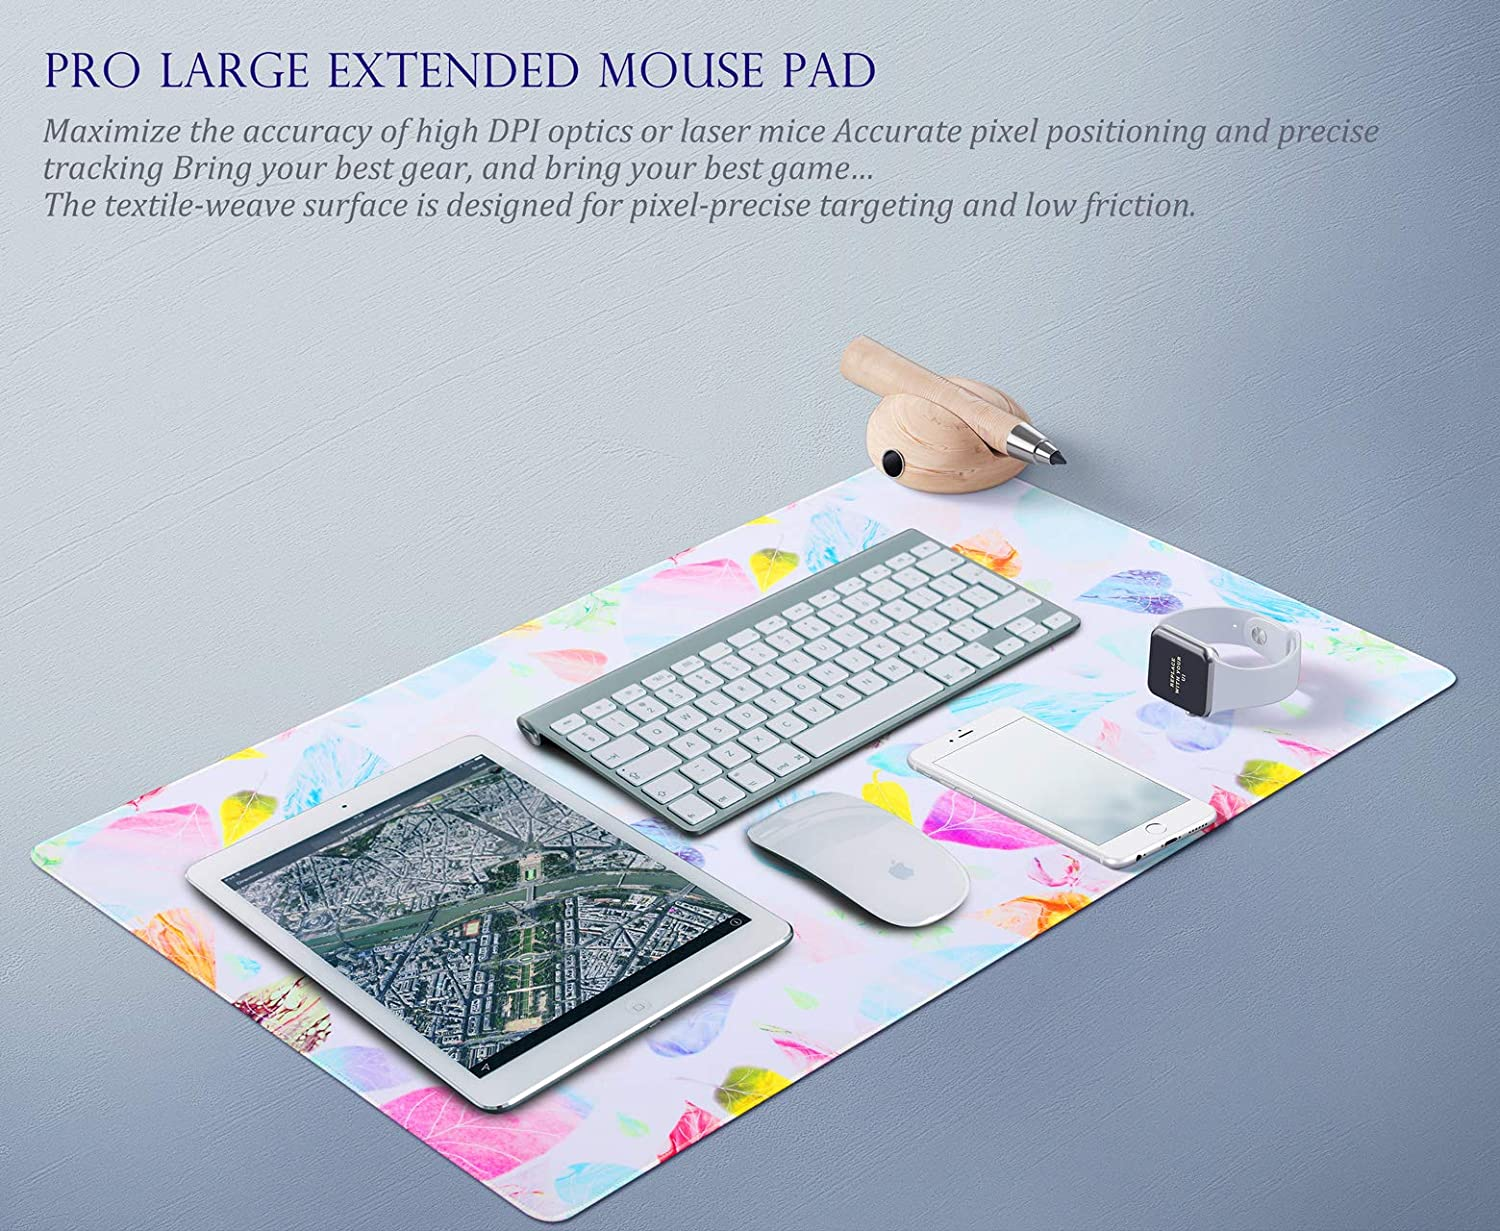 GDBT OS001 31.5/× 15.75/× 0.12 Gaming Mouse Pad Large Extended Mouse Pad Keyboard pad Laptop Mat Computer Game Mouse MatSensitivity Resistant Anti Slip Rubber Precise Stitched Edges Large Desk Mat